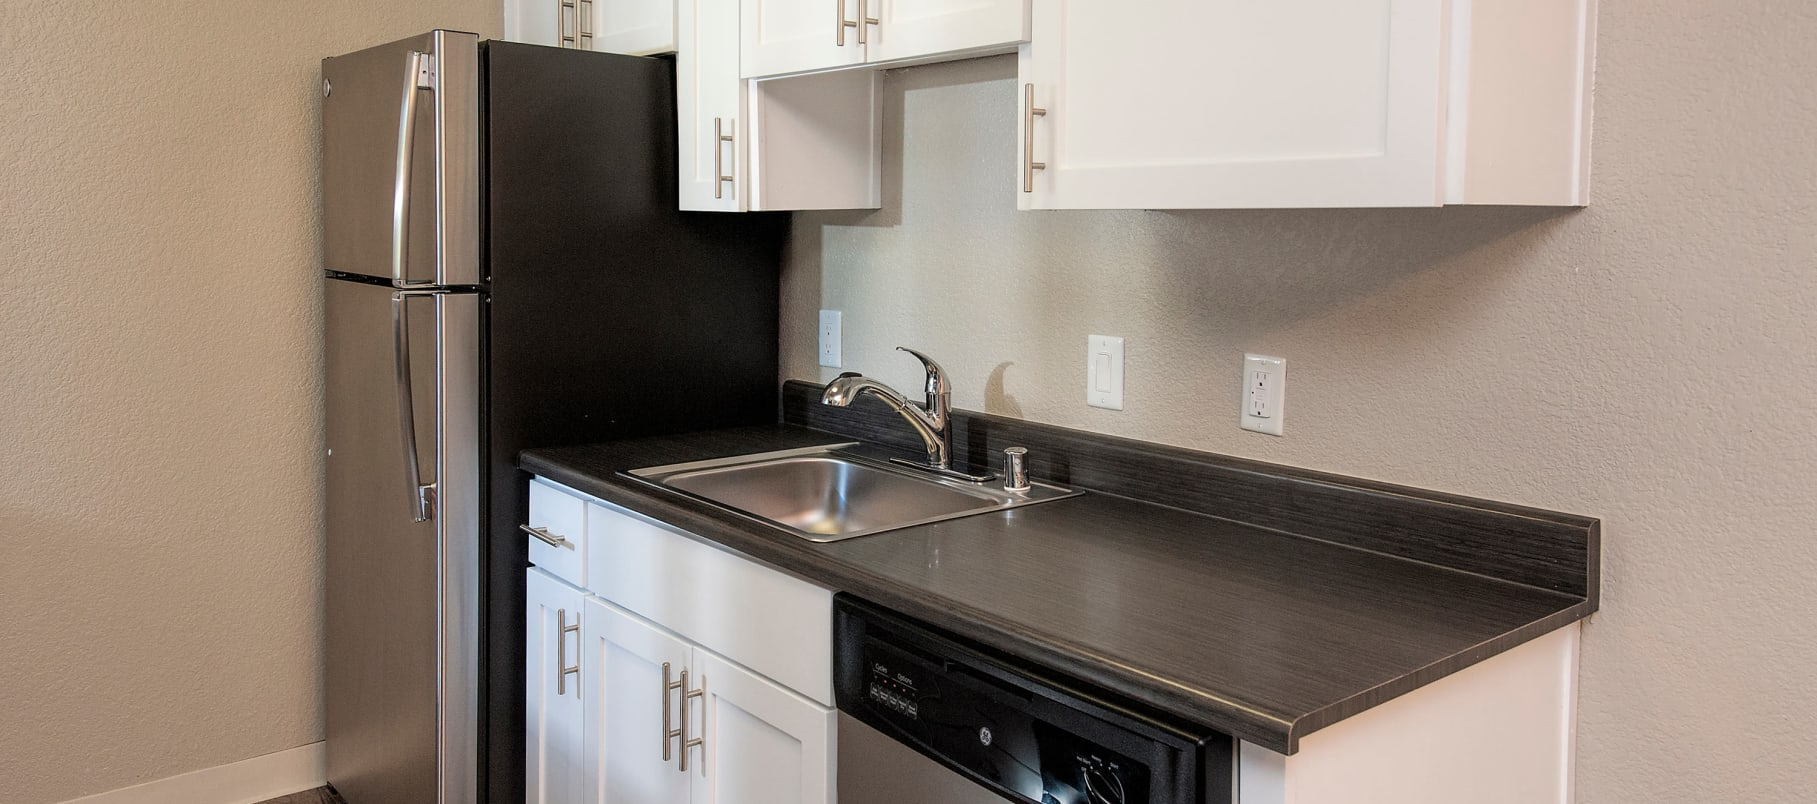 enjoy the kitchen at Plum Tree Apartment Homes in Martinez, California